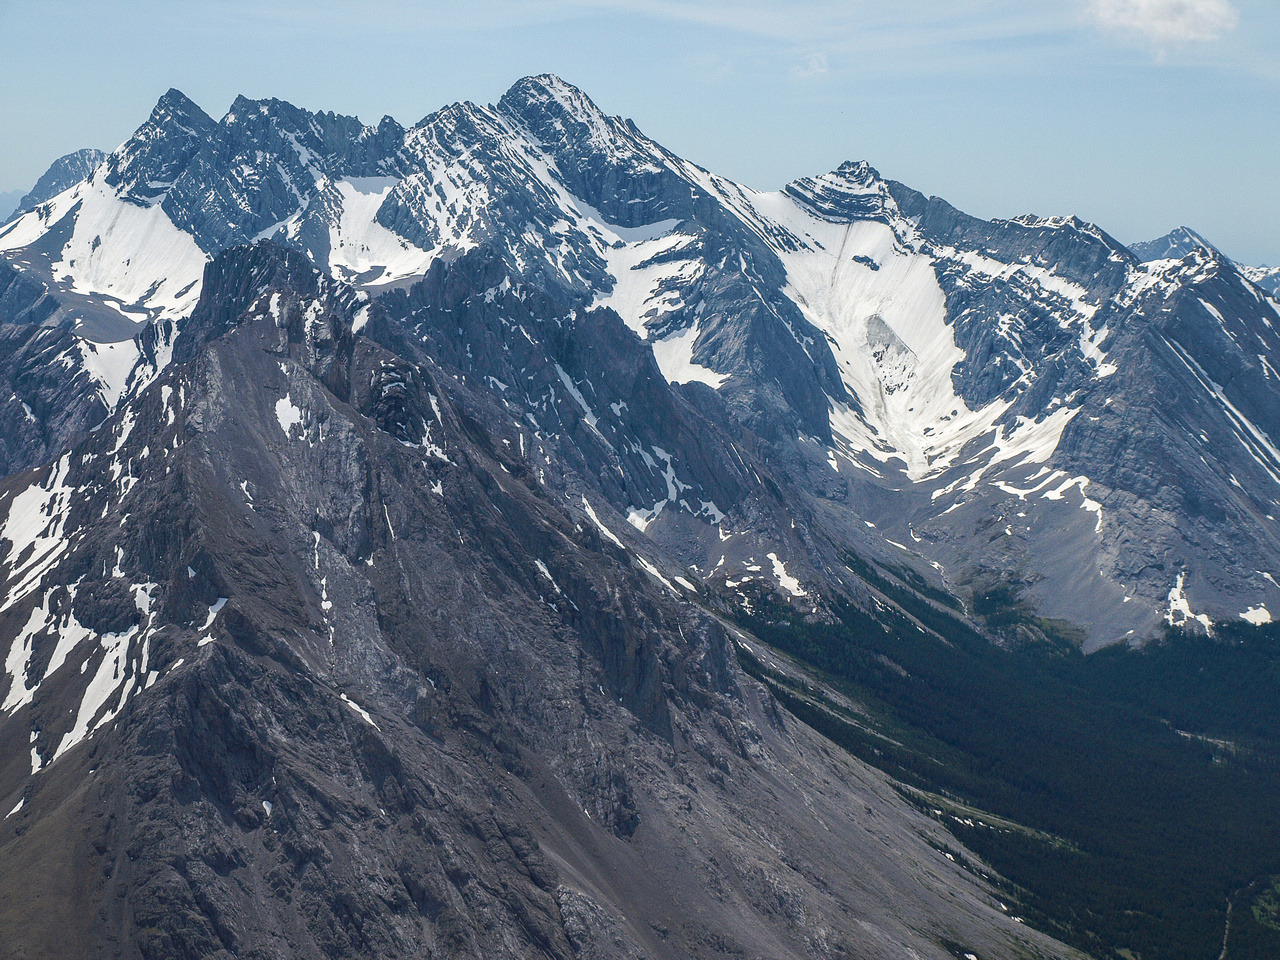 Mount Rae and the Rae glacier as seen from the summit of Tombstone South.